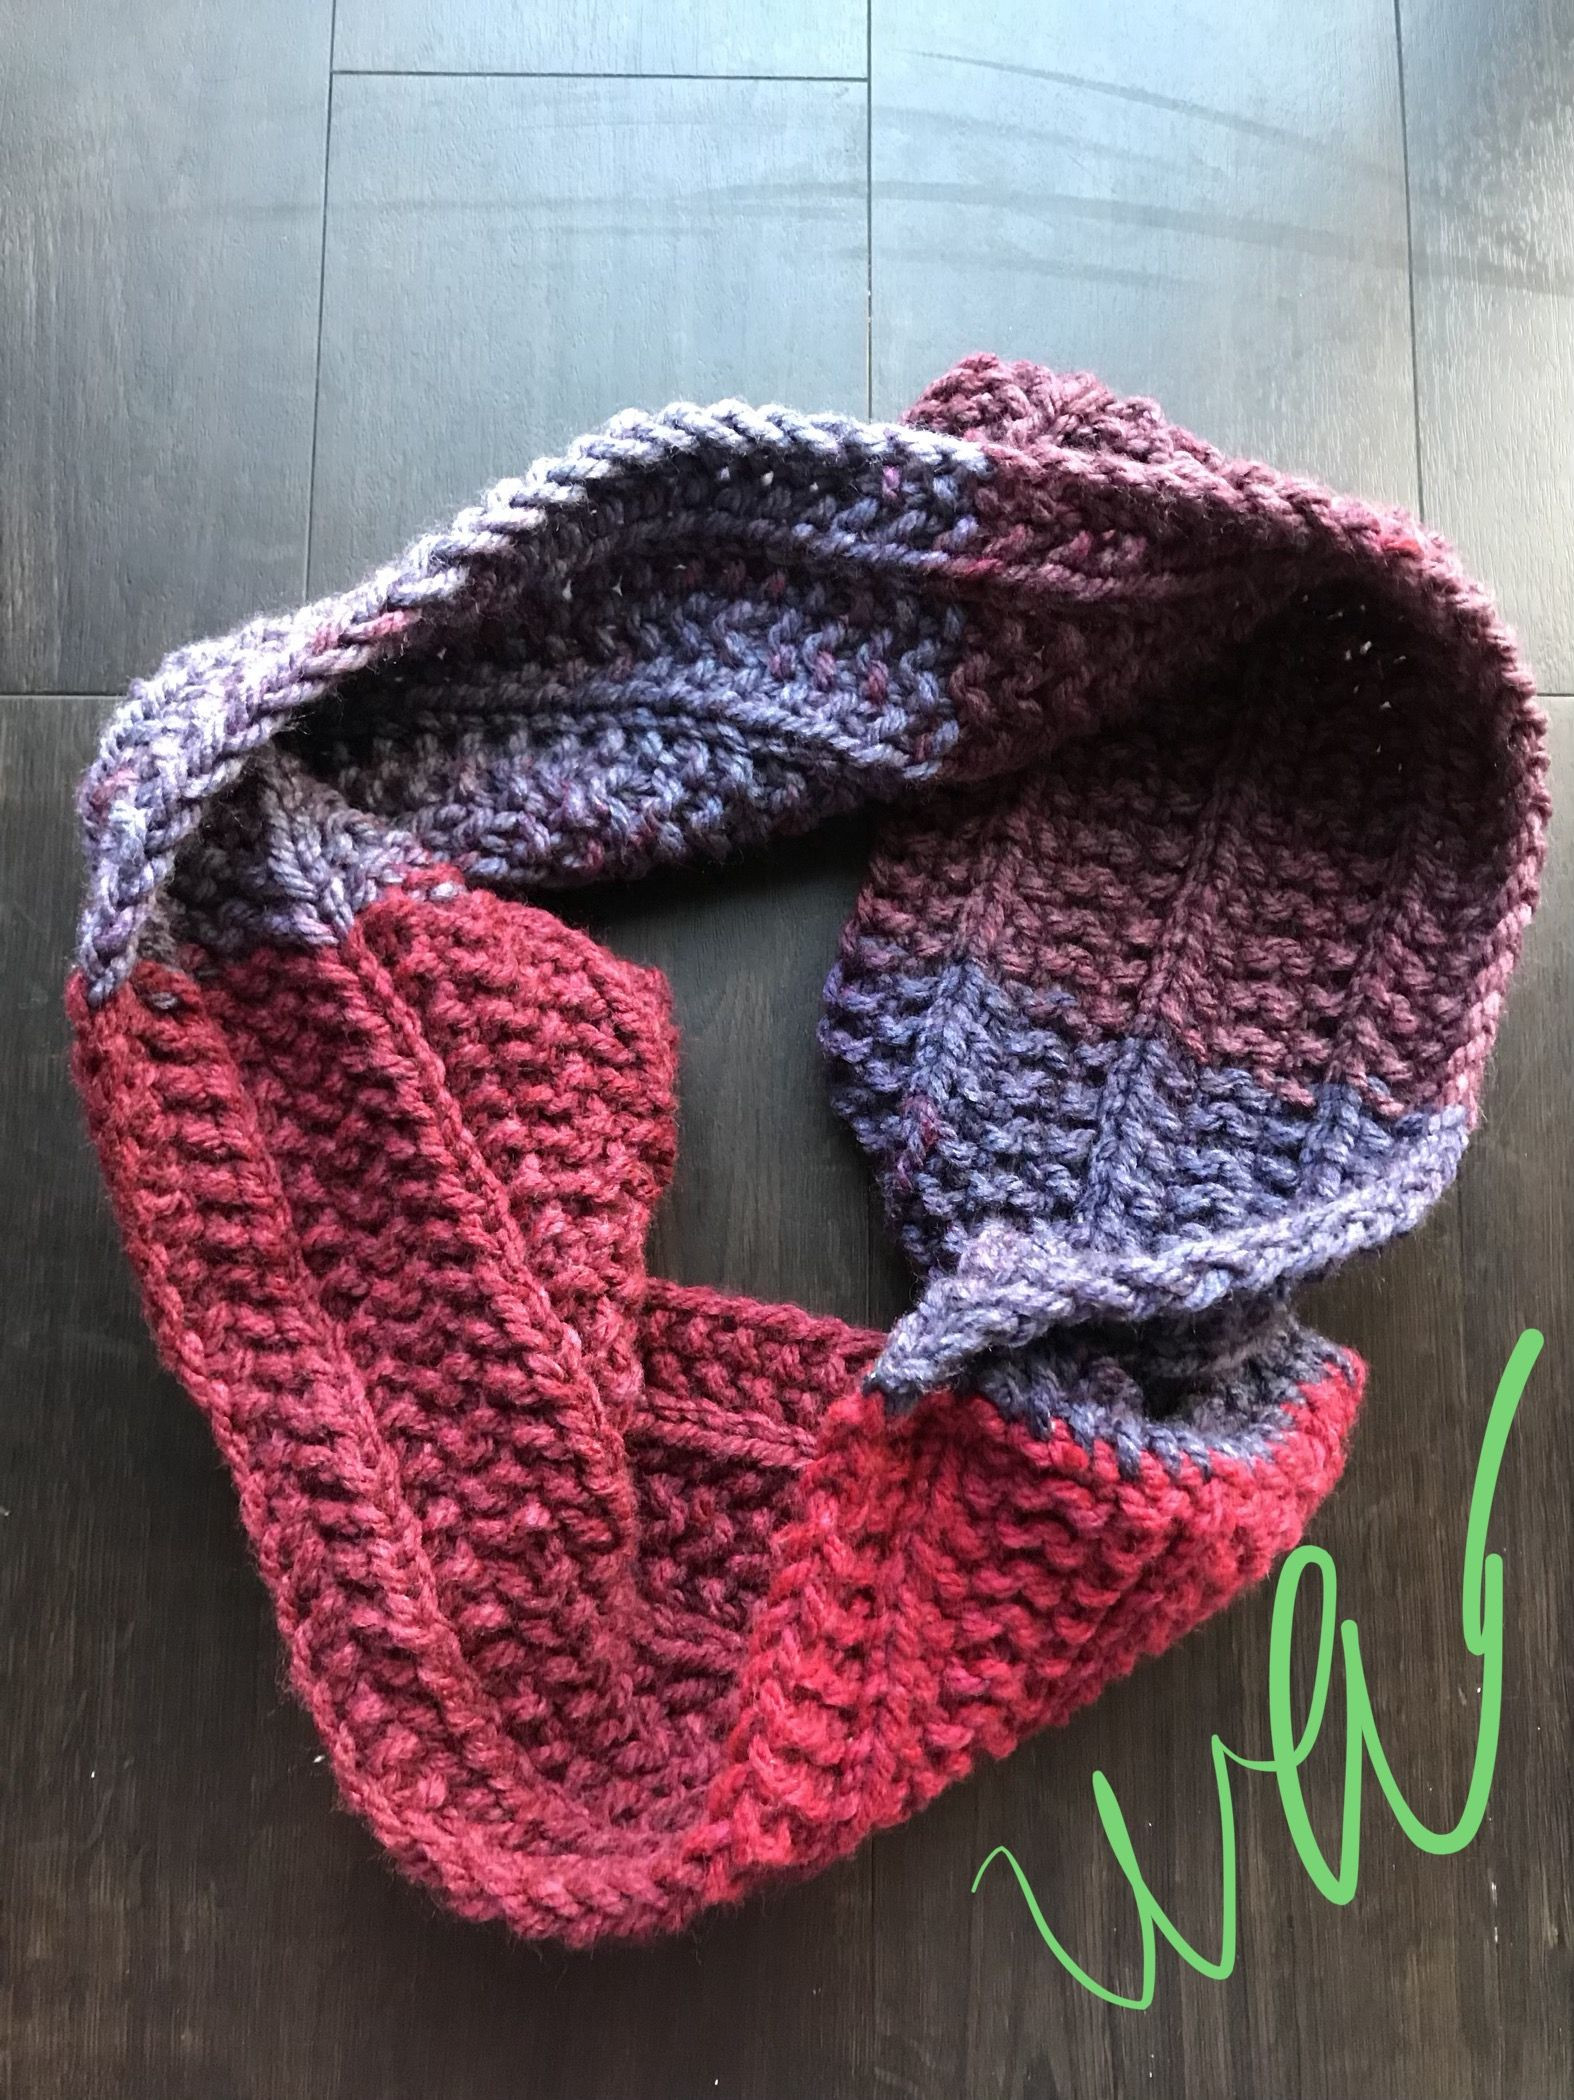 Caron cakes tea cake Hibiscus in Lenny's Seeds pattern on